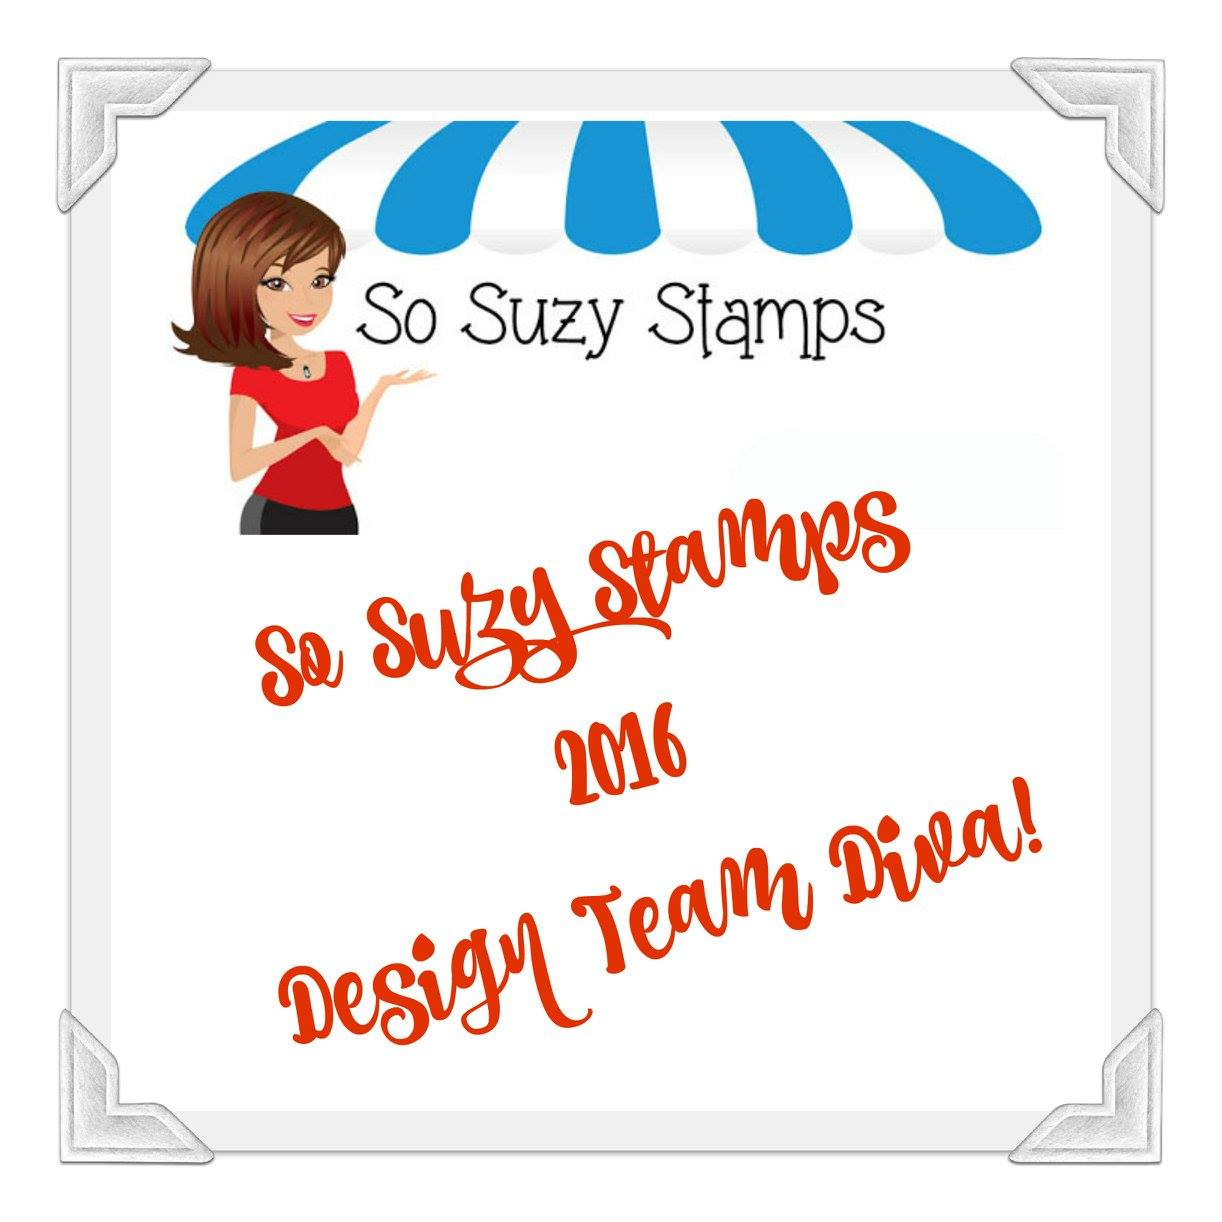 S0 Suzy Stamps